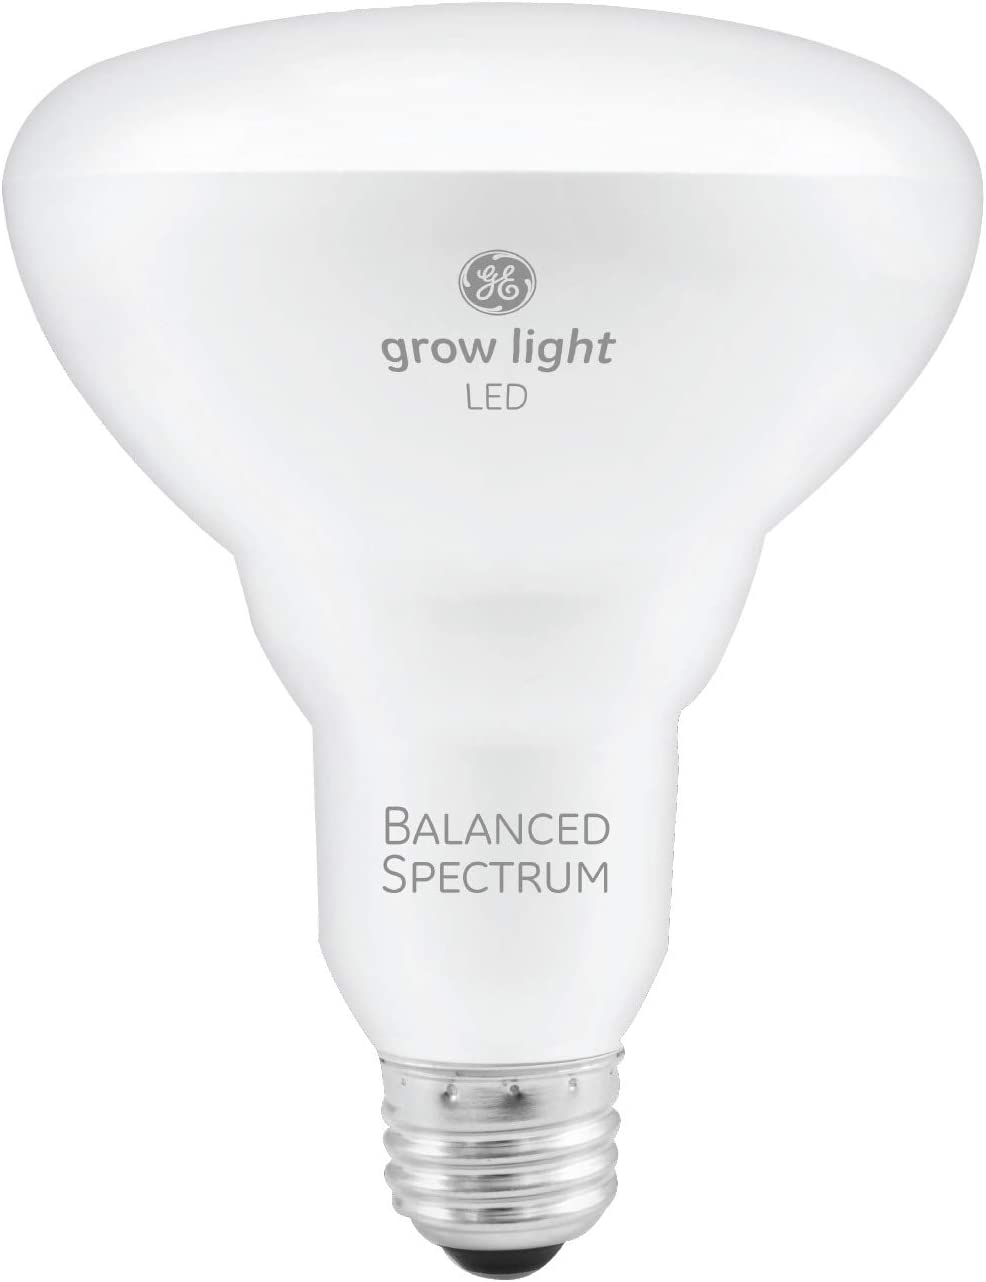 GE Lighting 93101230 9-Watt BR30 LED Grow Light Bulb for Indoor Plants, Balanced Full Spectrum